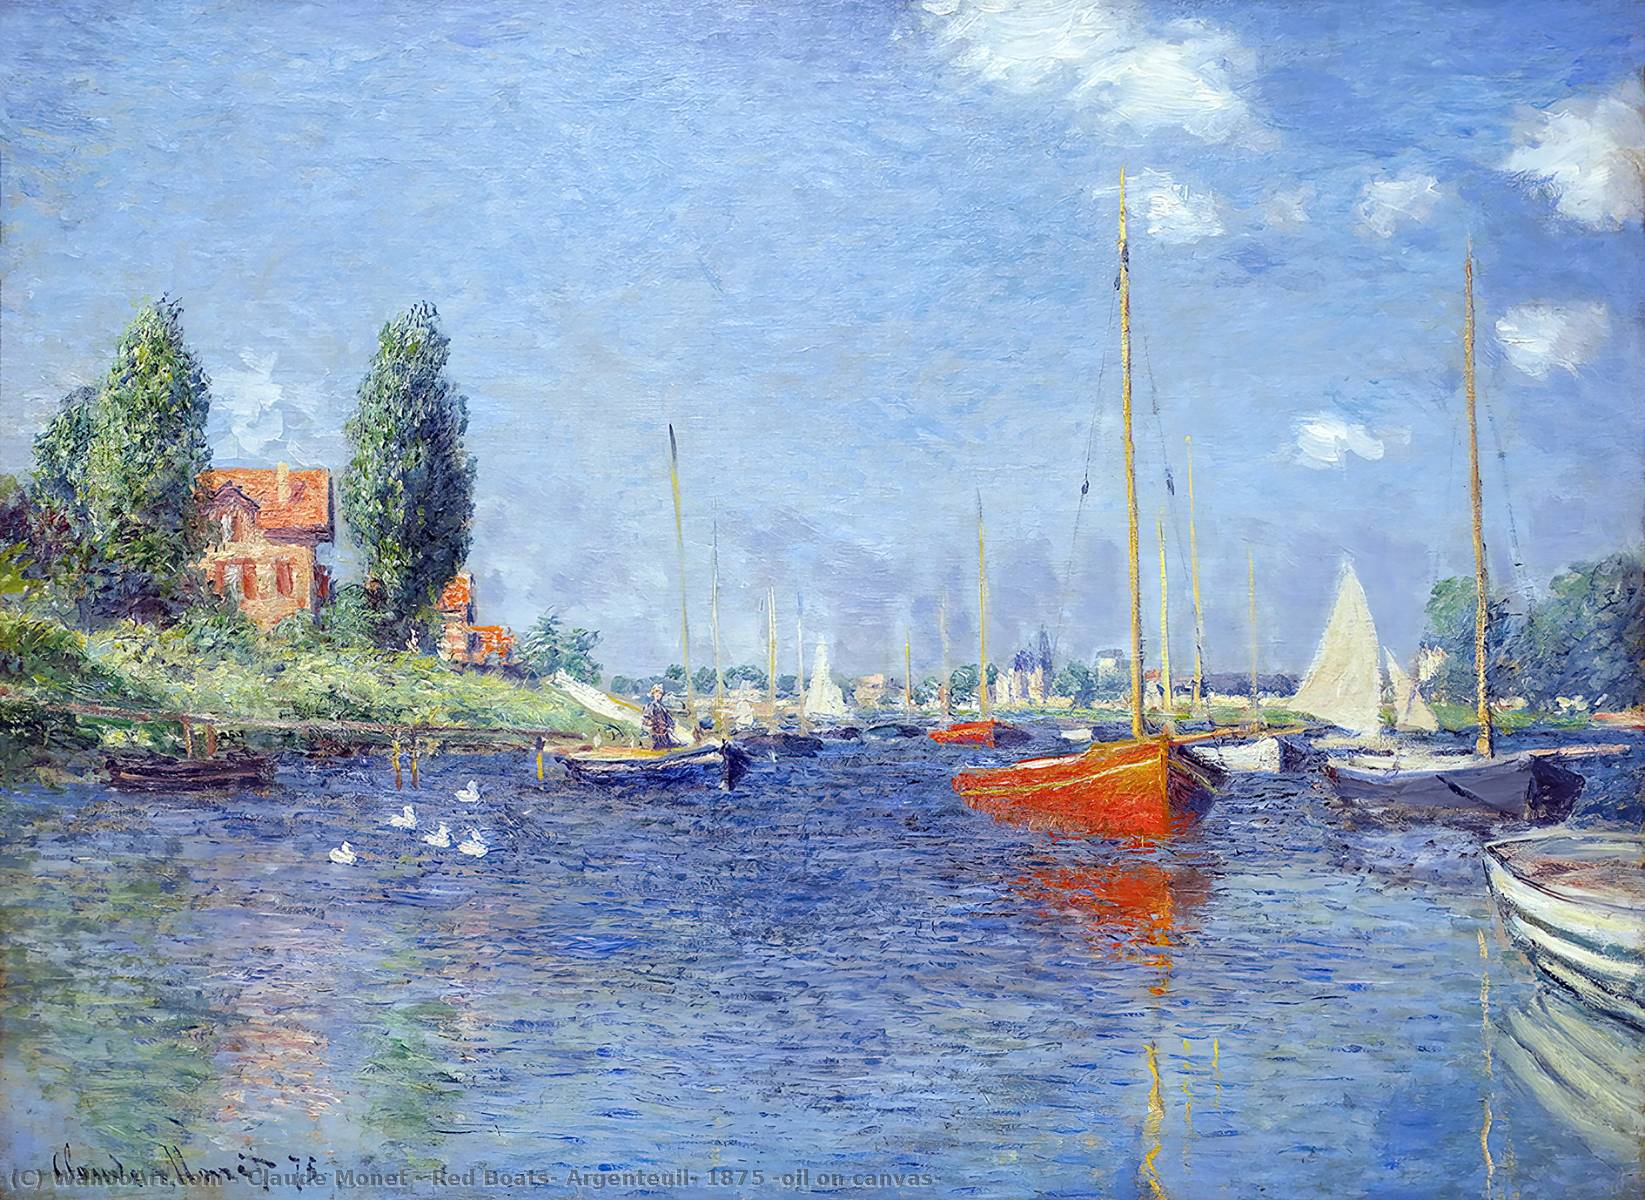 Red Boats, Argenteuil, 1875 (oil on canvas), Oil On Canvas by Claude Monet (1840-1926, France)